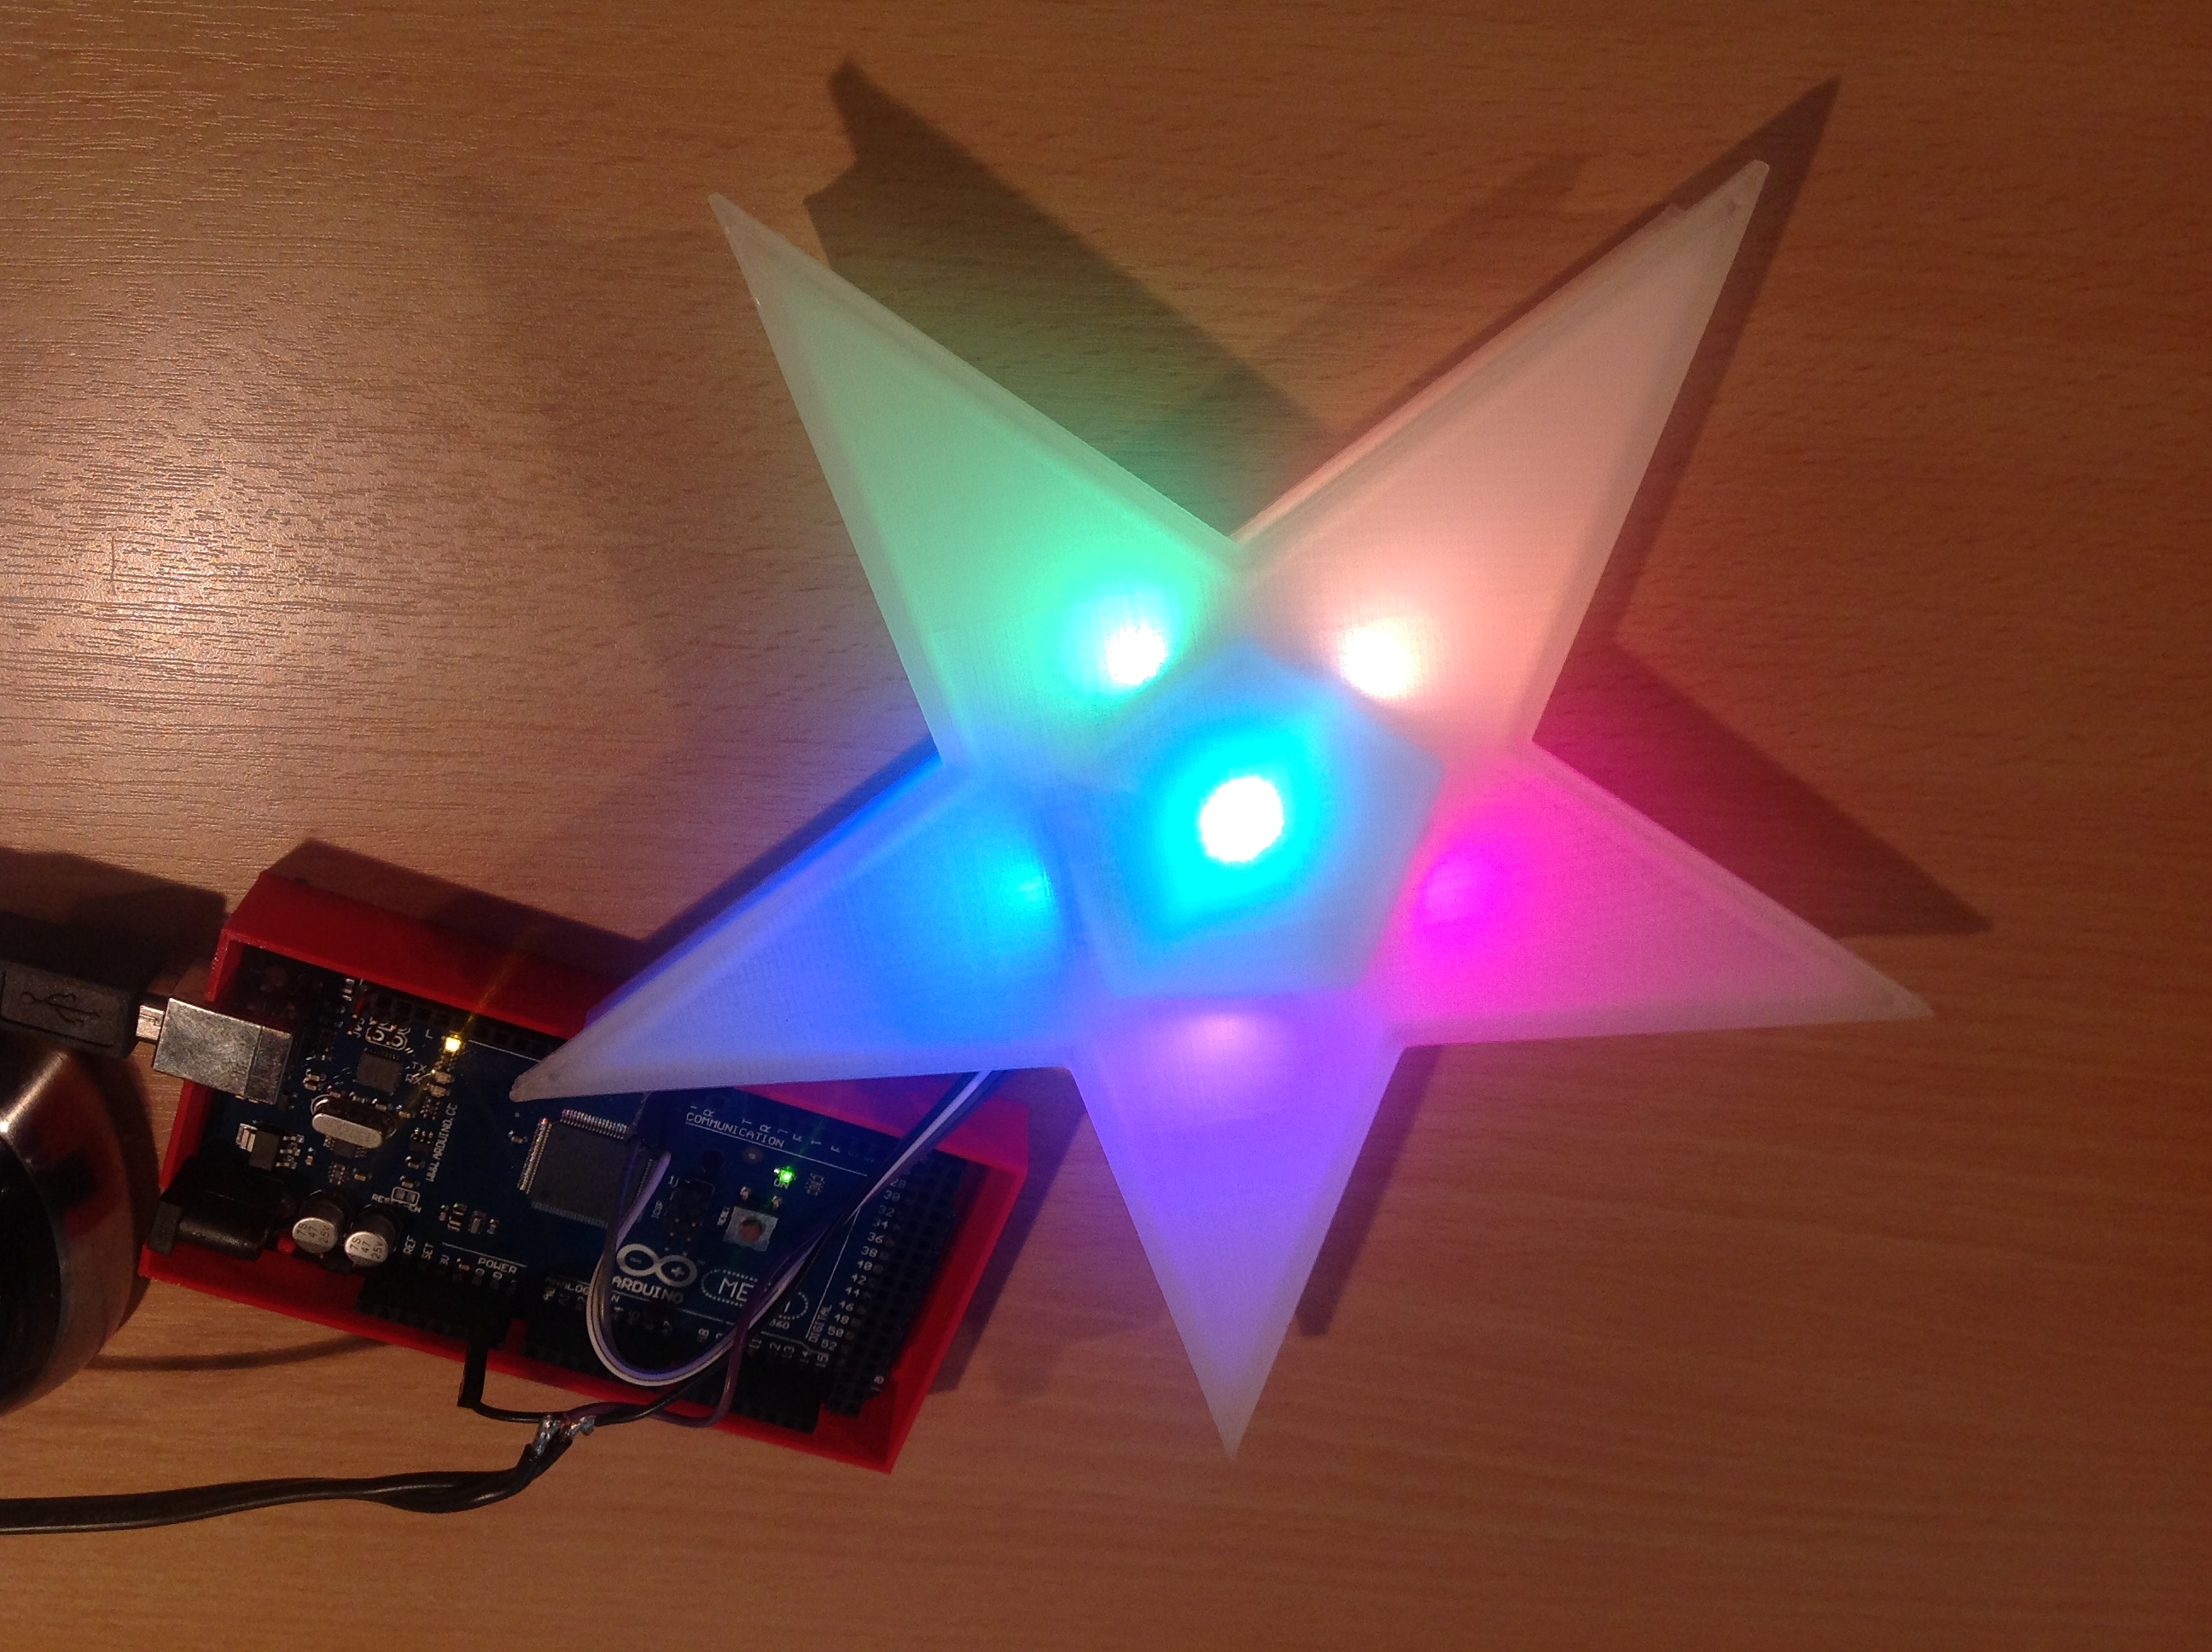 Rgb Led Christmas Star By Sn00zerman Thingiverse Arduino Lights Mar 17 2015 View Original